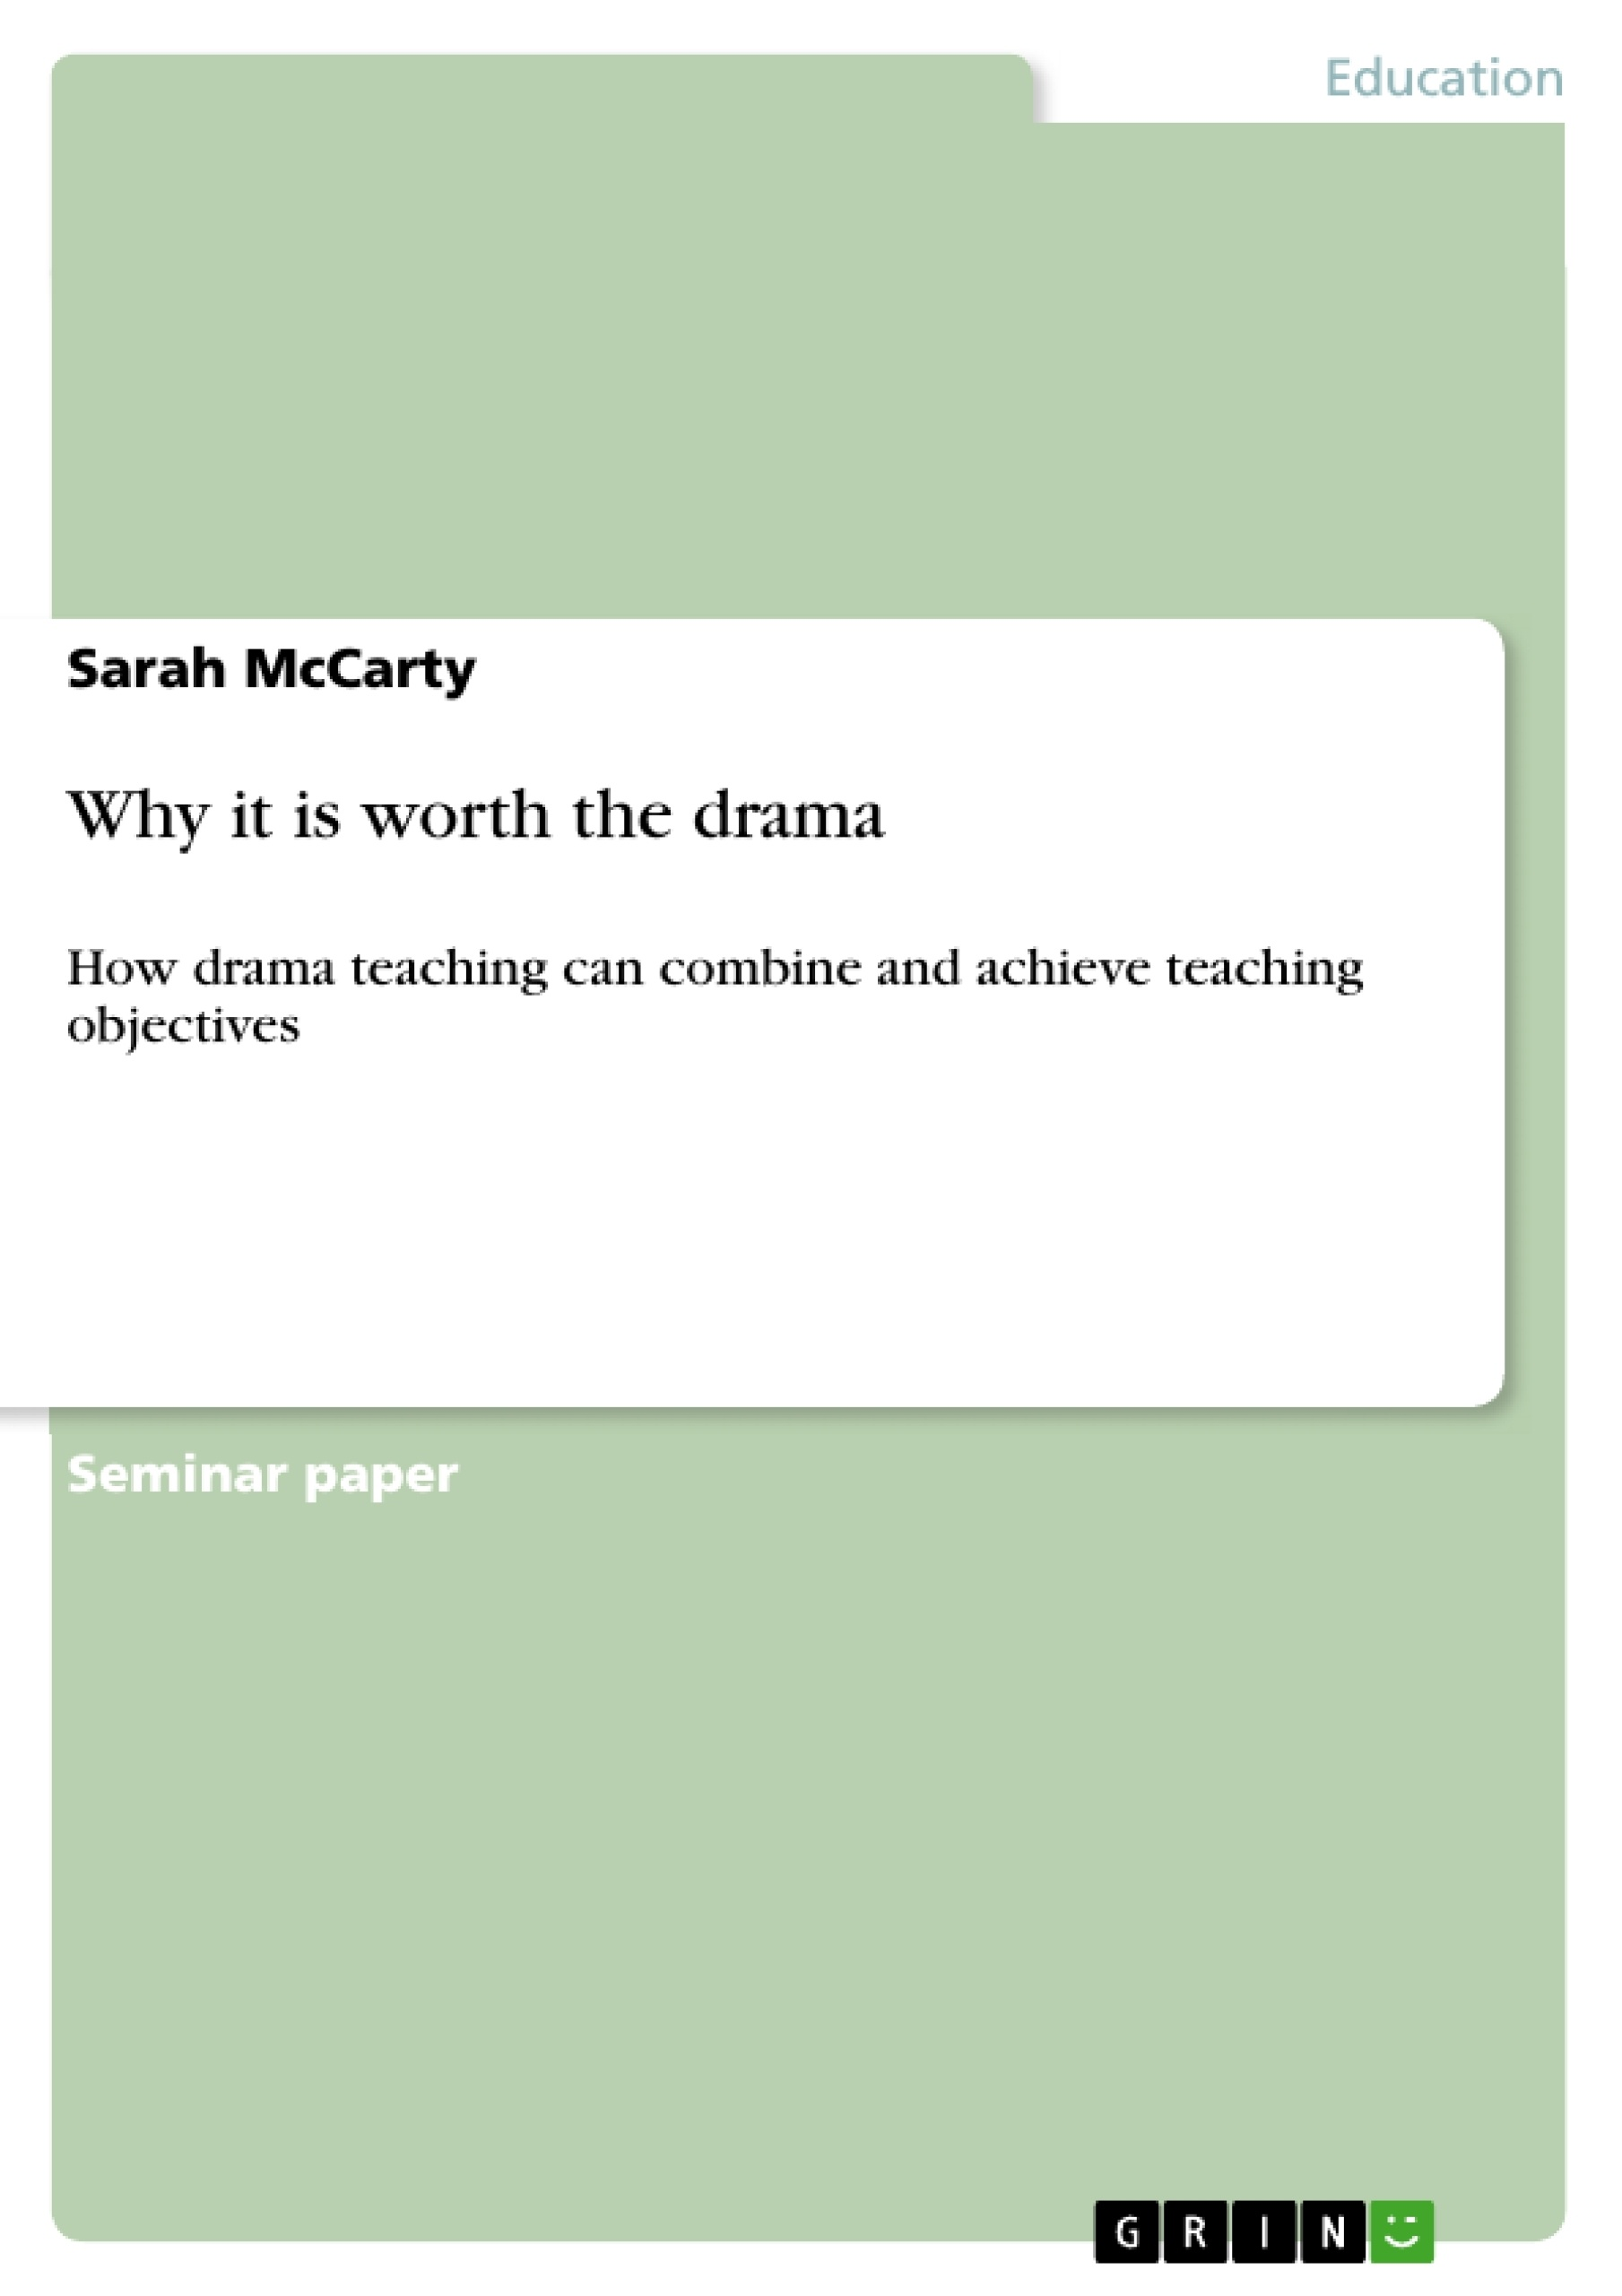 Title: Why it is worth the drama